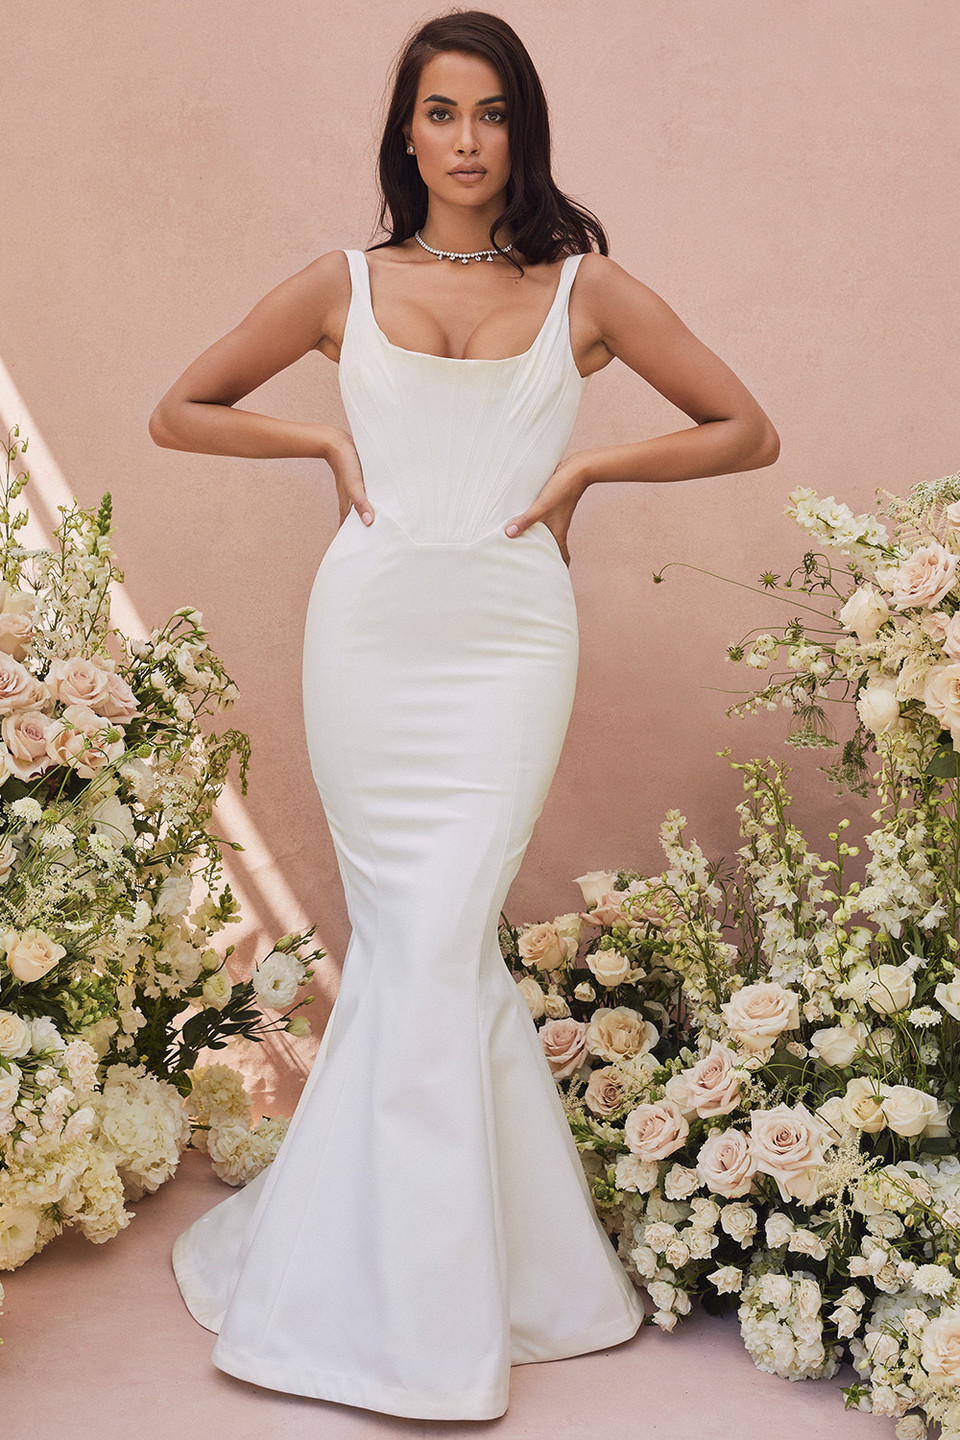 Estelle Ivory Satin Mermaid Bridal Gown